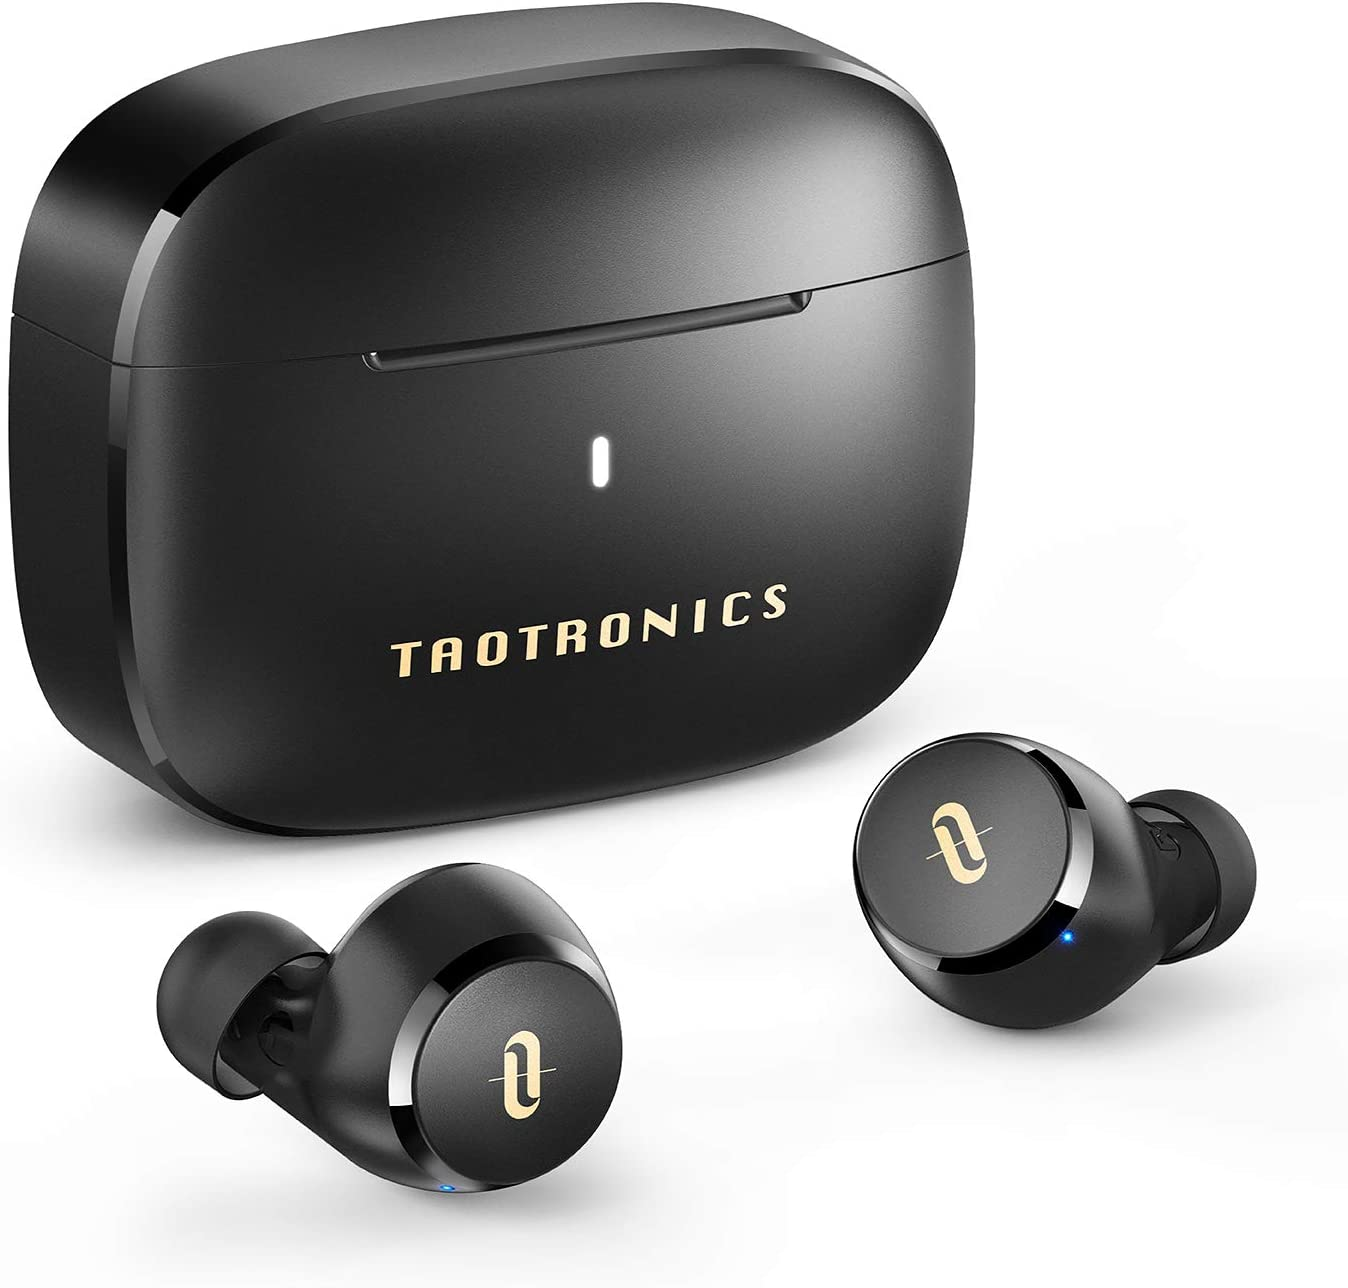 Wireless Earbuds, TaoTronics Bluetooth 5.0 Headphones Soundliberty 97 True Wireless Ear Buds in-Ear with mic CVC 8.0 Noise Cancelling AptX Stereo Bass Touch Control IPX8 Waterproof 9H Playtime